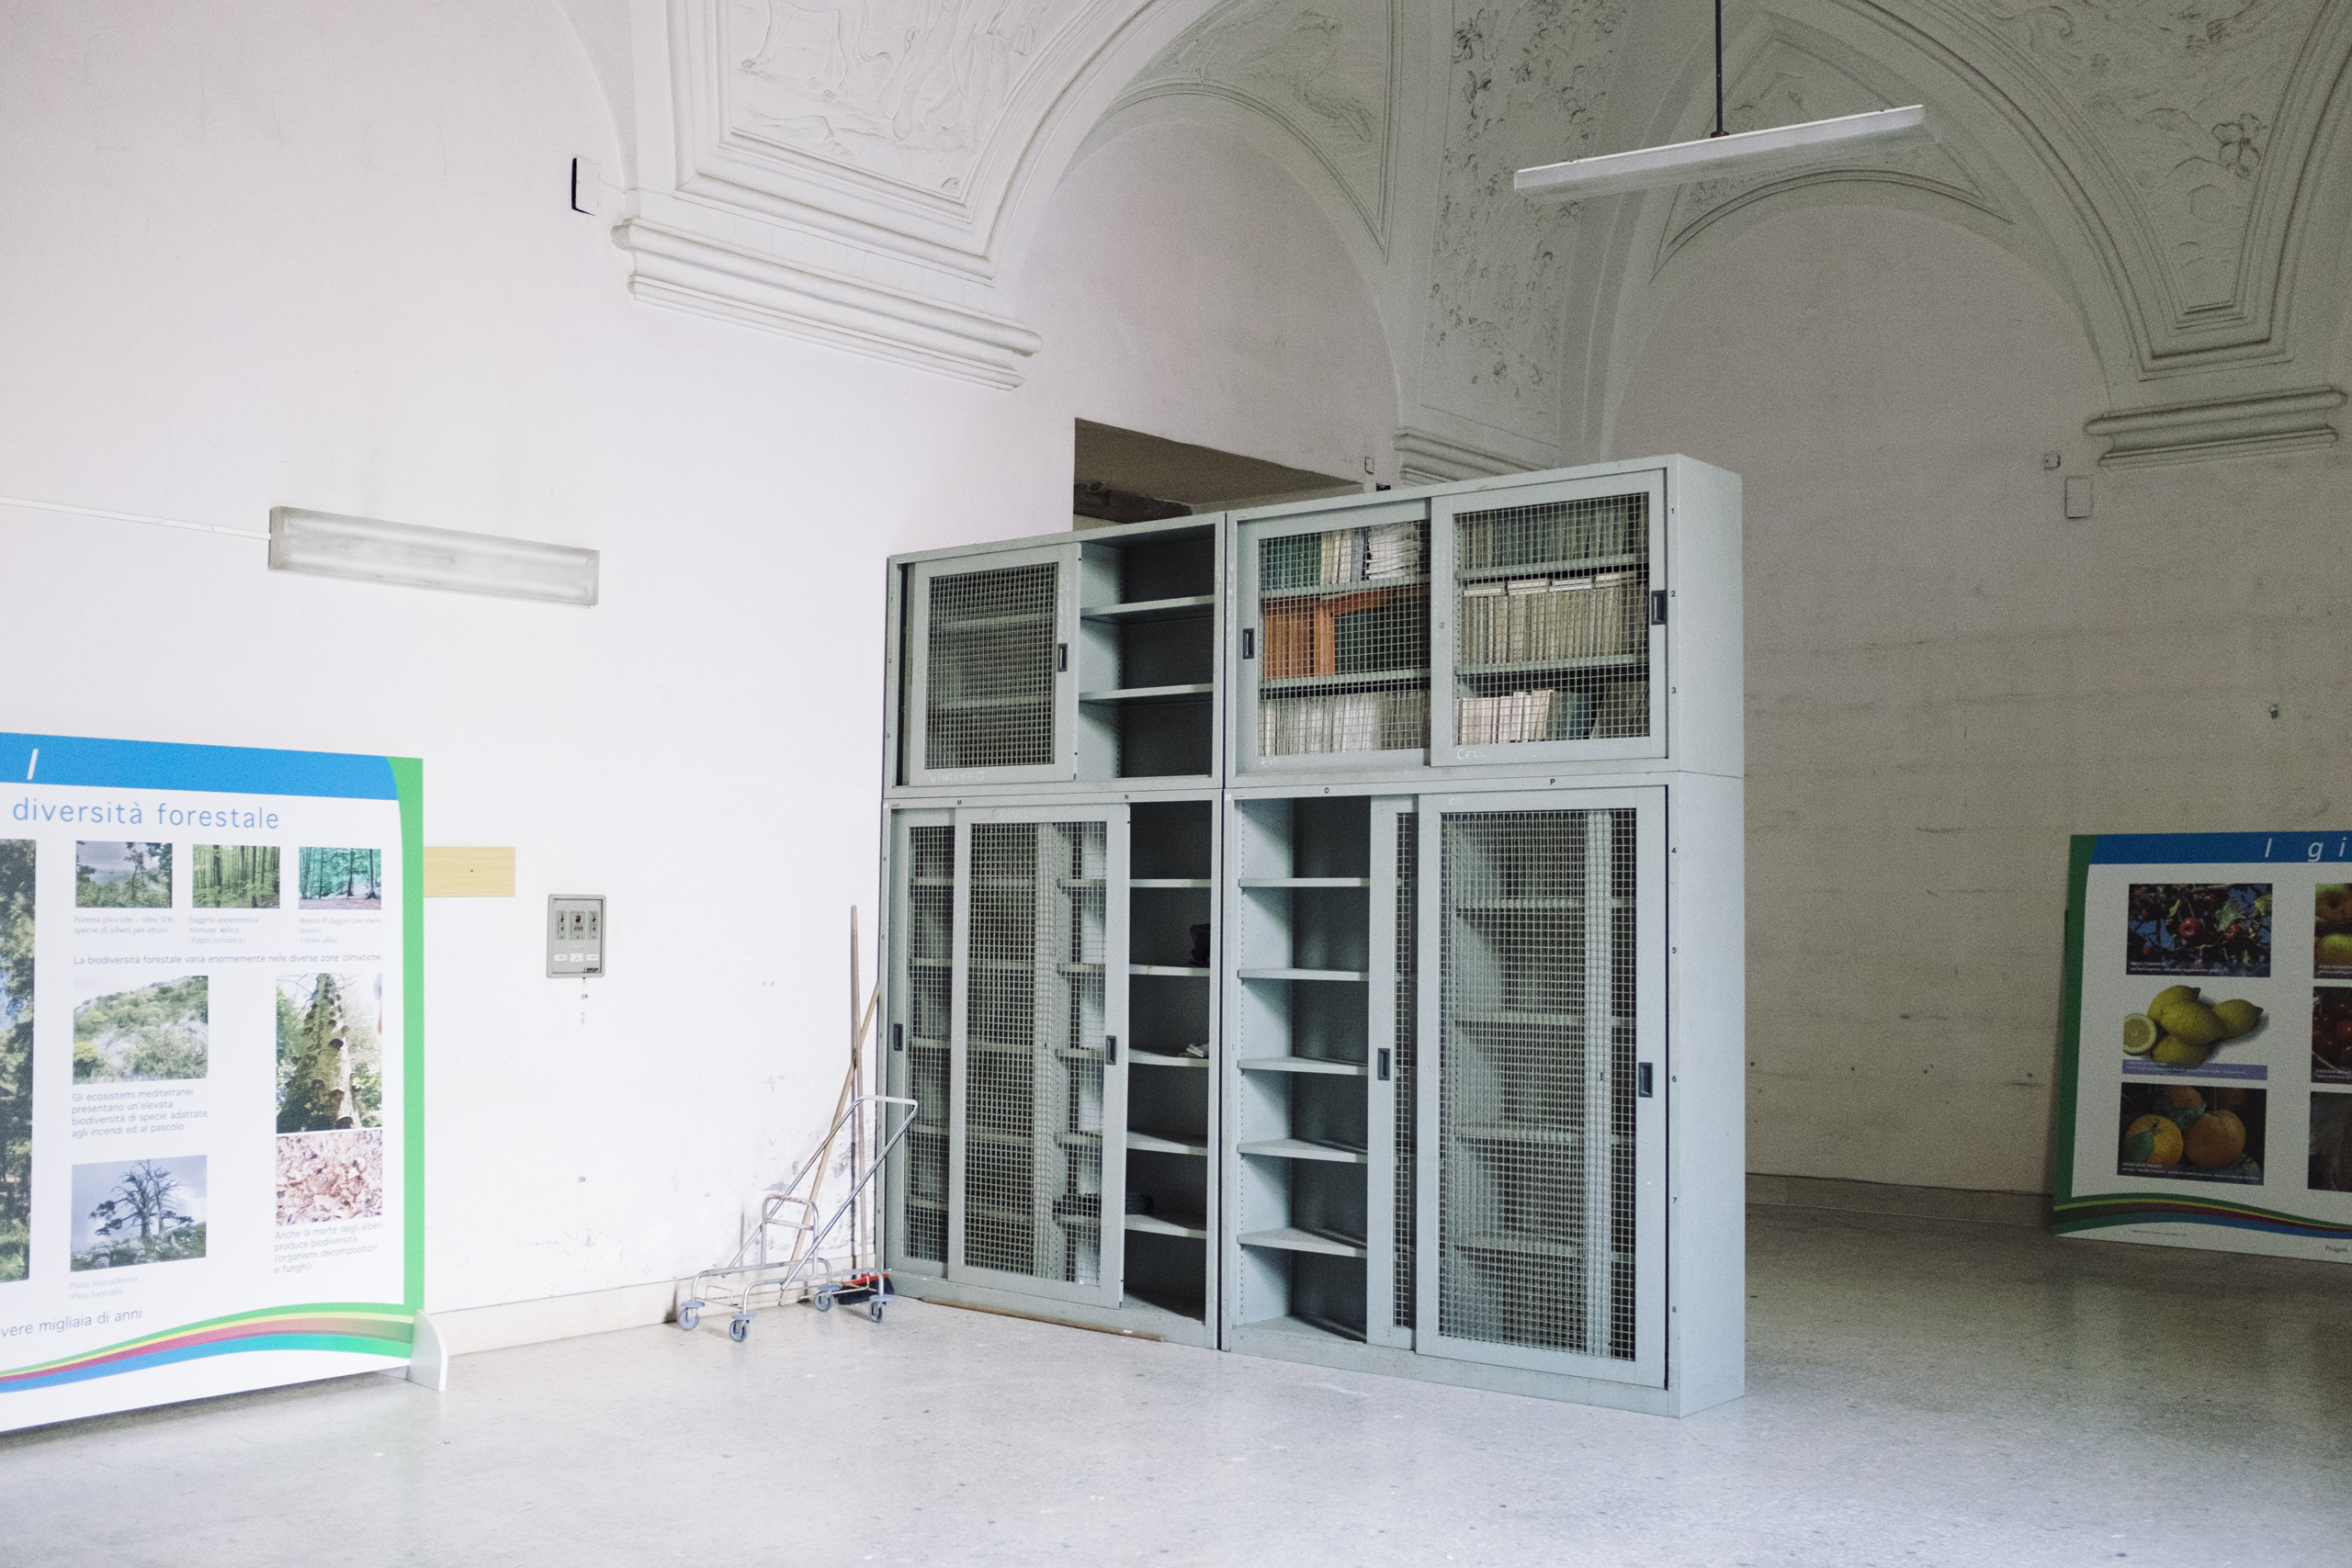 Book archives in the Royal Palace of Portici, now hosting the faculty of agricolture of the University of Naples Federico II, March, 2016.